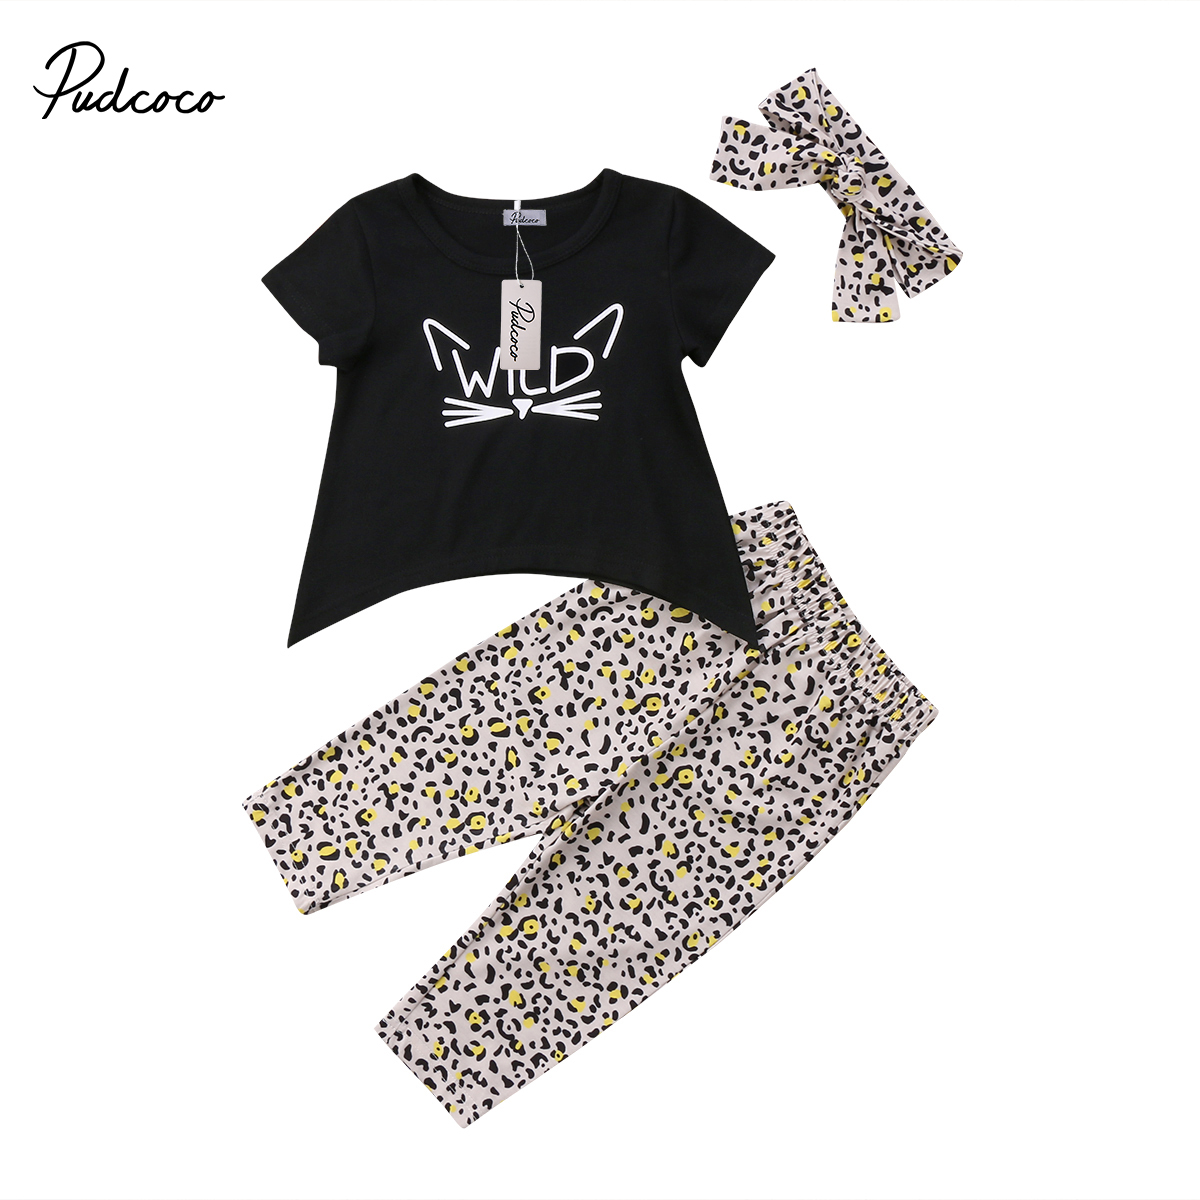 2018 Brand New Toddler Infant Child Leopard Kids Baby Girls Outfits Clothes T-shirt Tops Dress Long Pants Headband 3PCS Set 1-6T